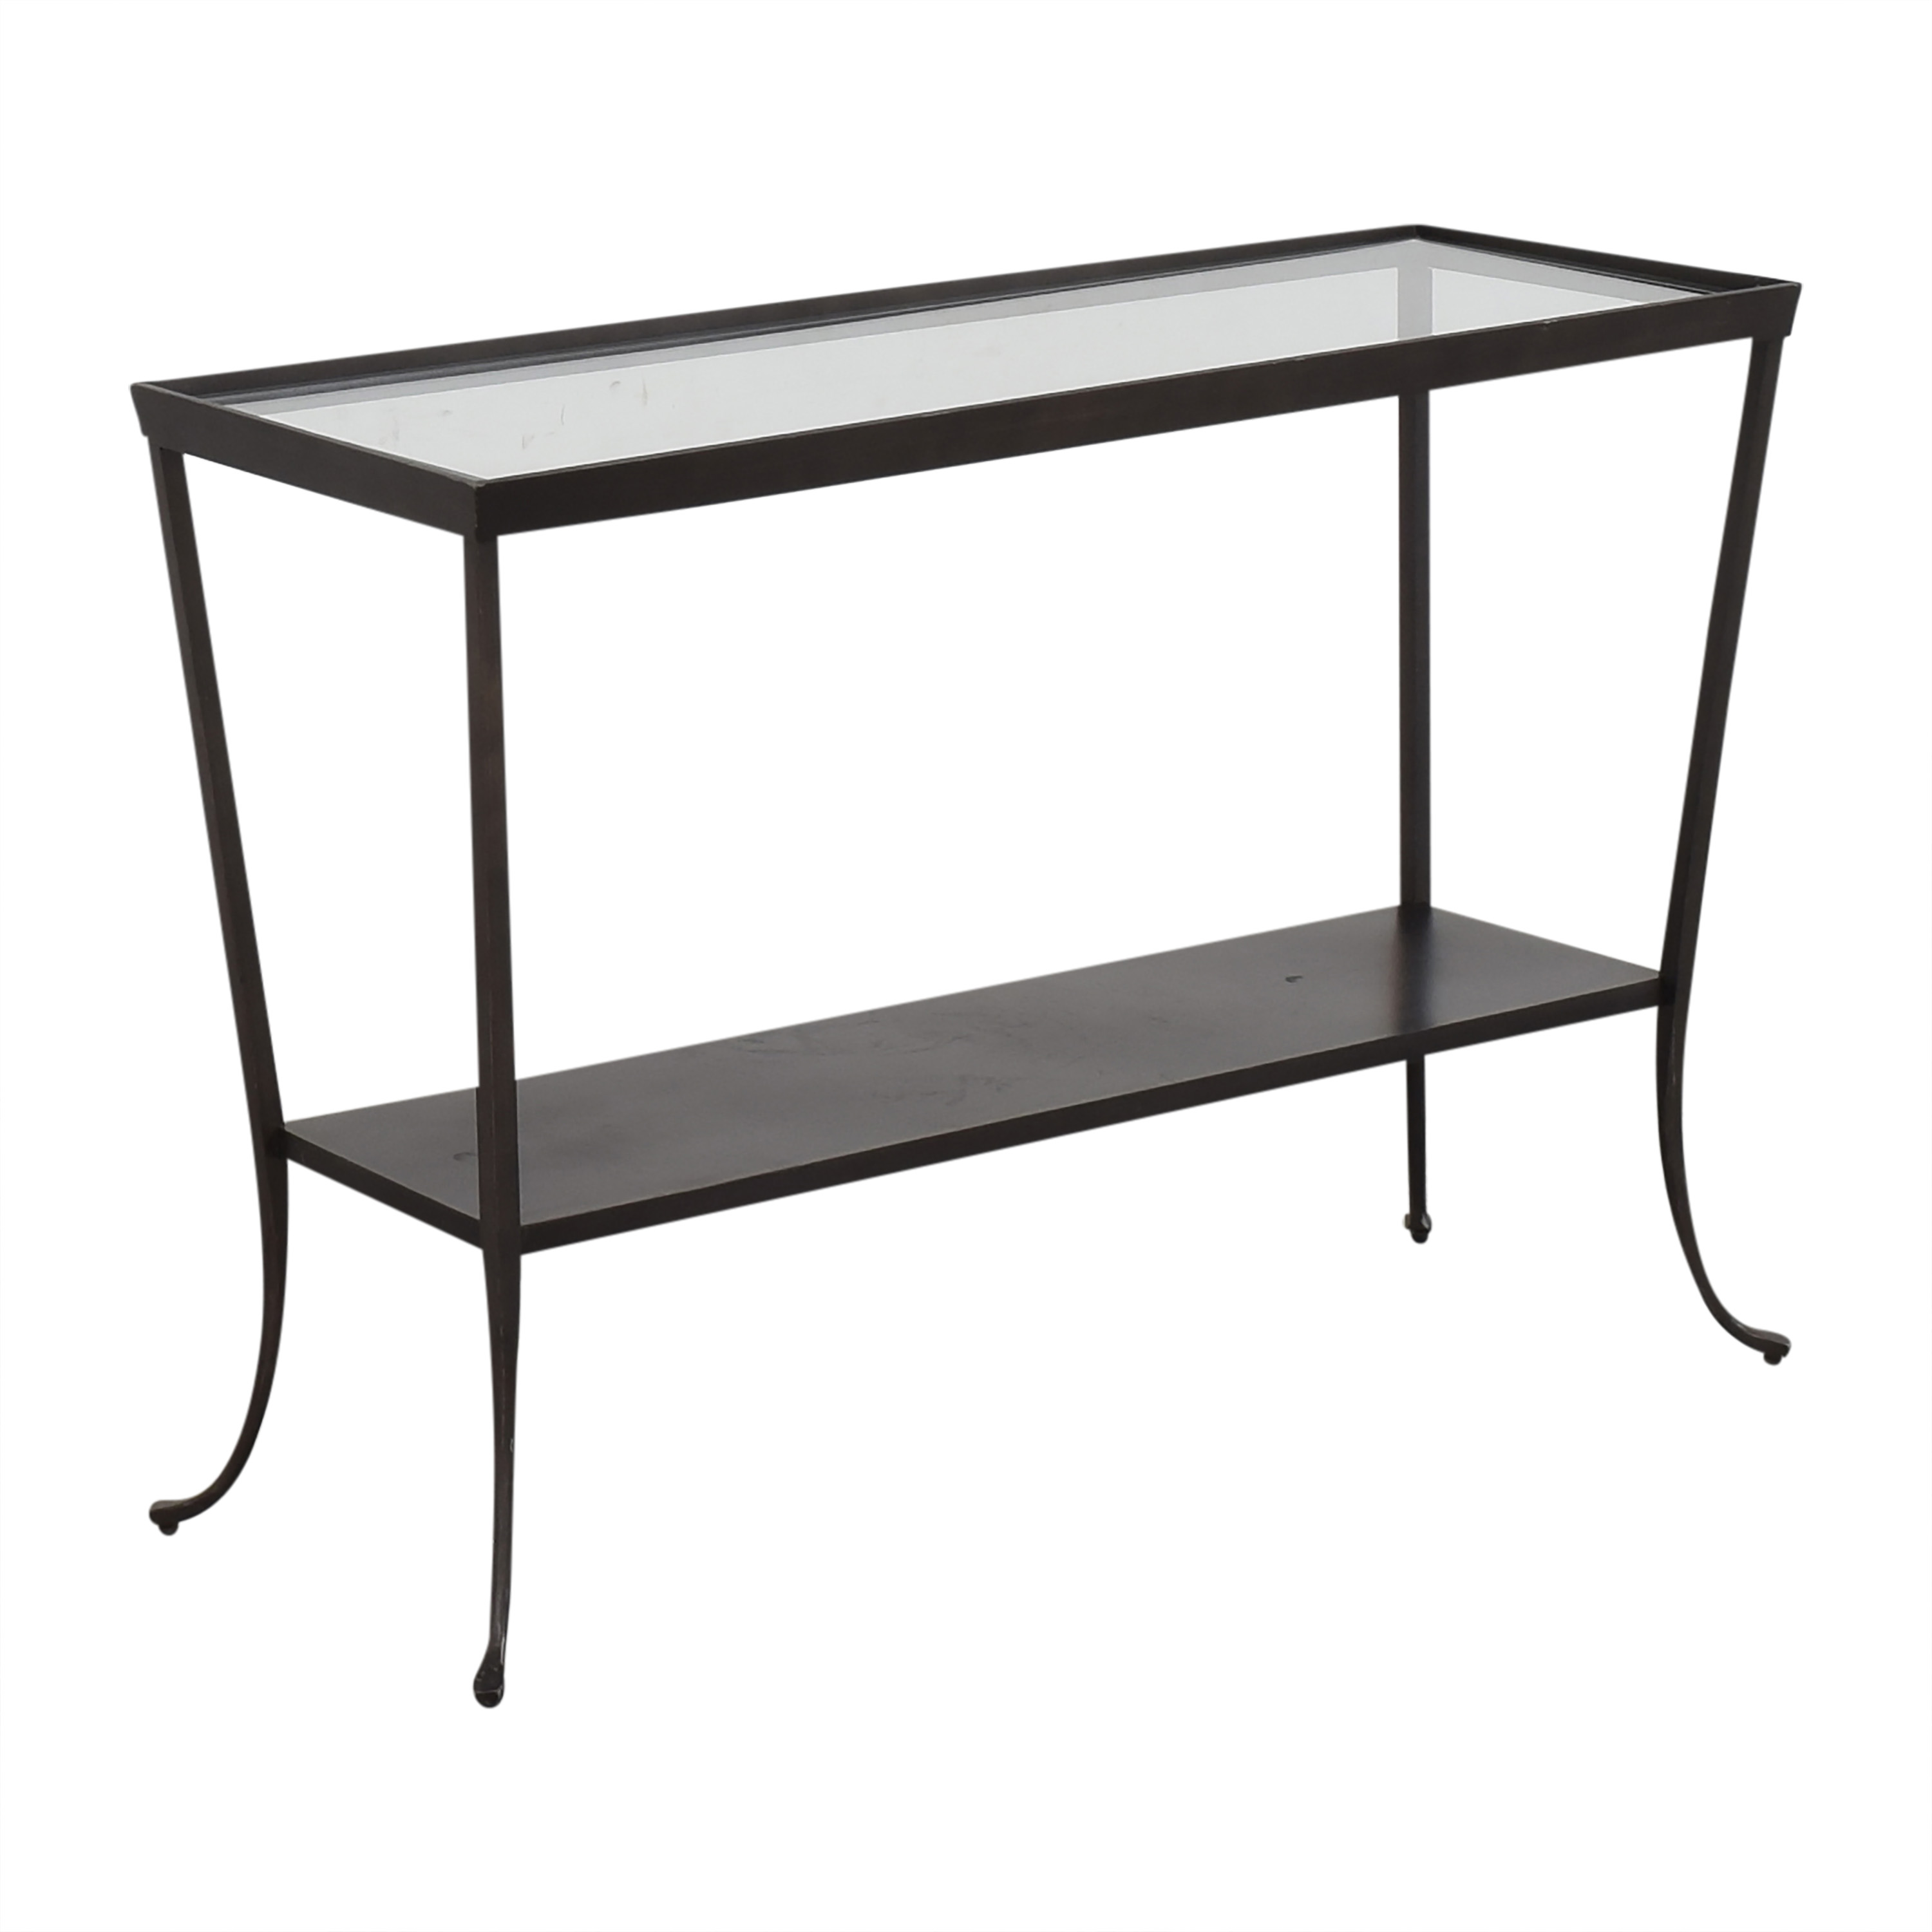 Crate & Barrel Crate & Barrel Console Table with Translucent Surface nj